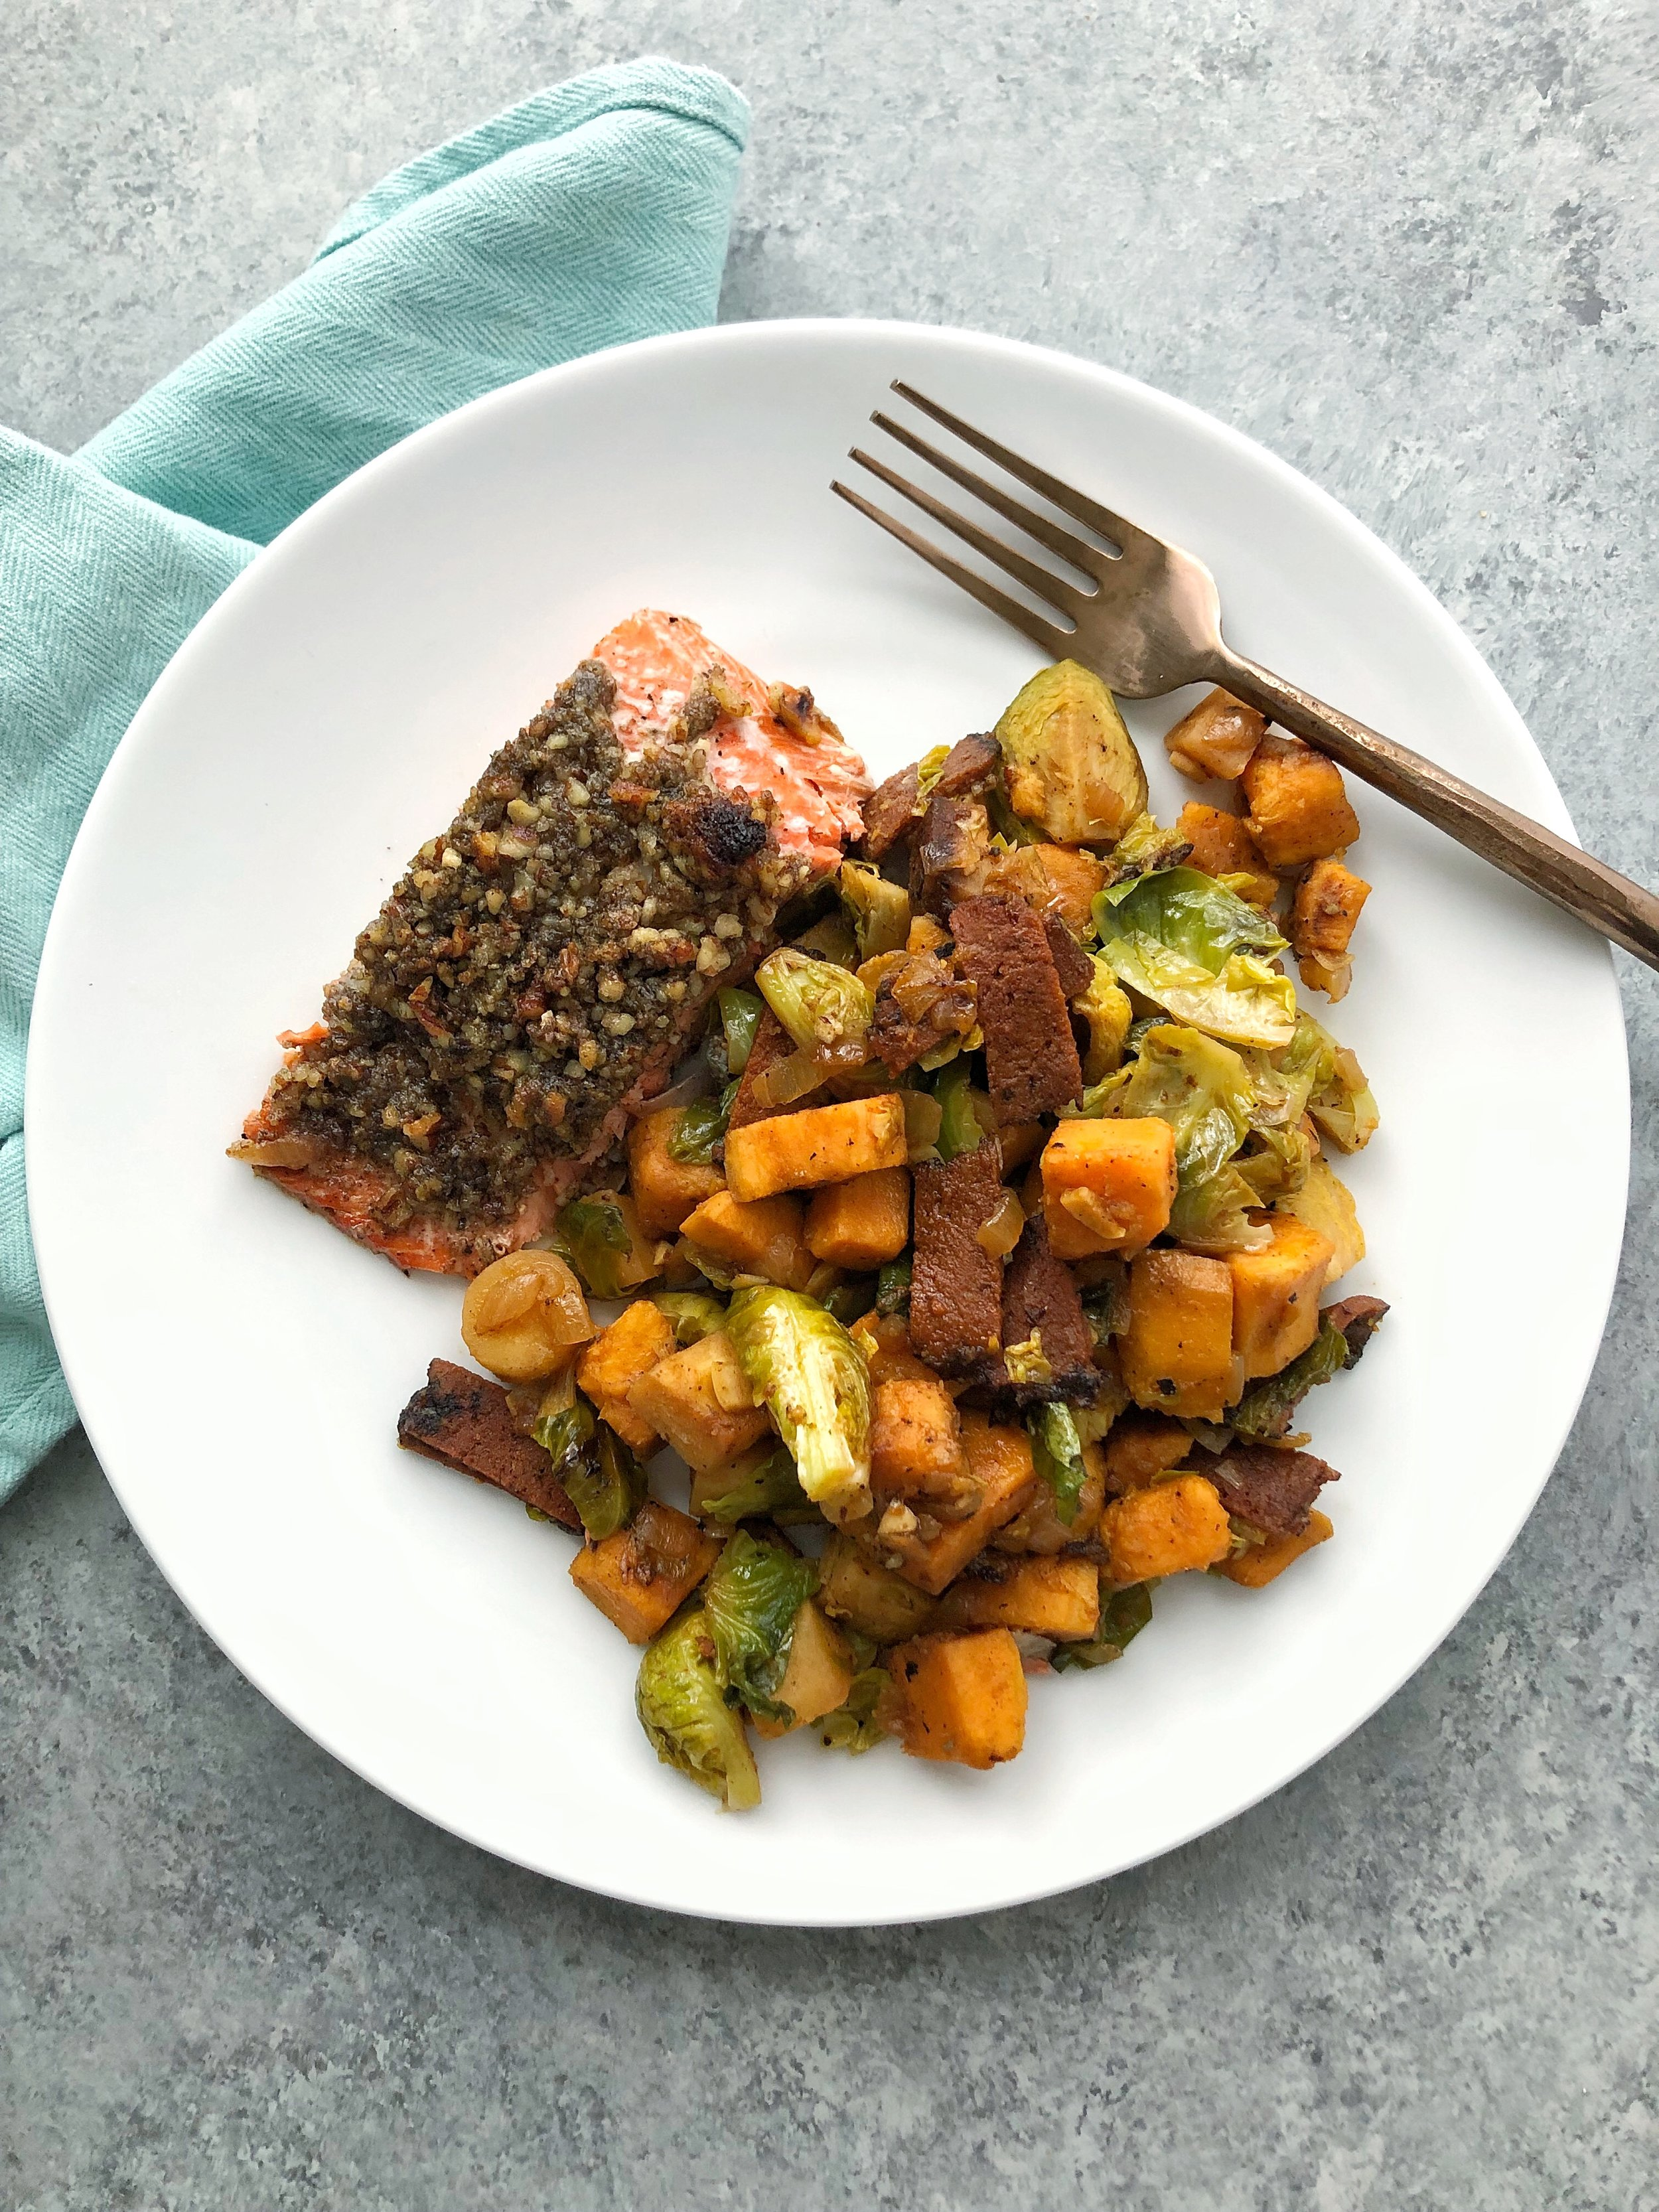 …and also different carbs in this sweet potato, butternut and parsnip hash I made to go with pecan-dill salmon!